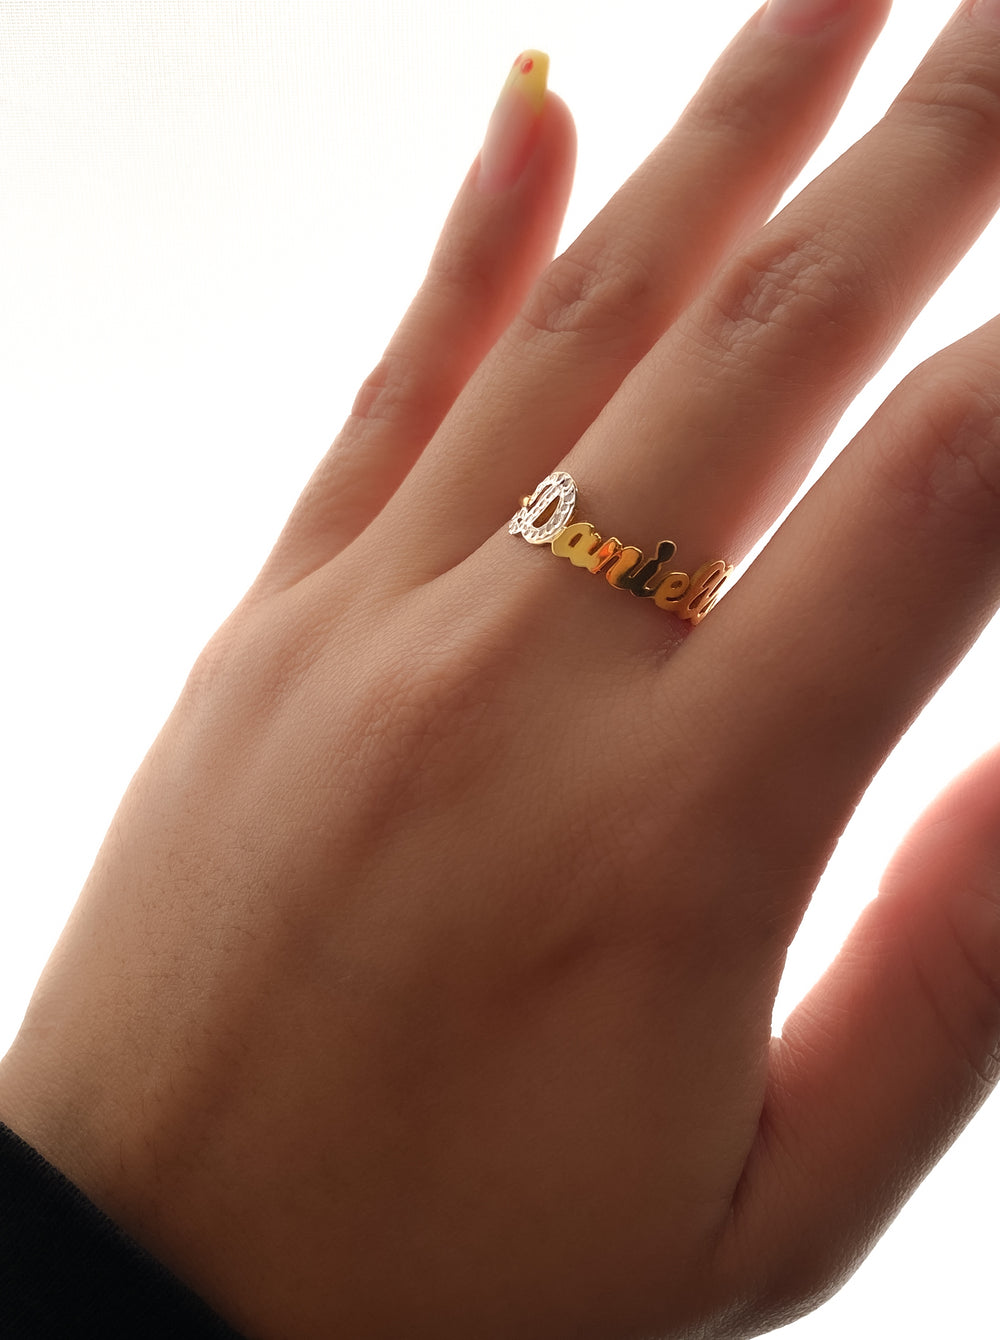 THE TINY SINGLE CUT LETTER RING